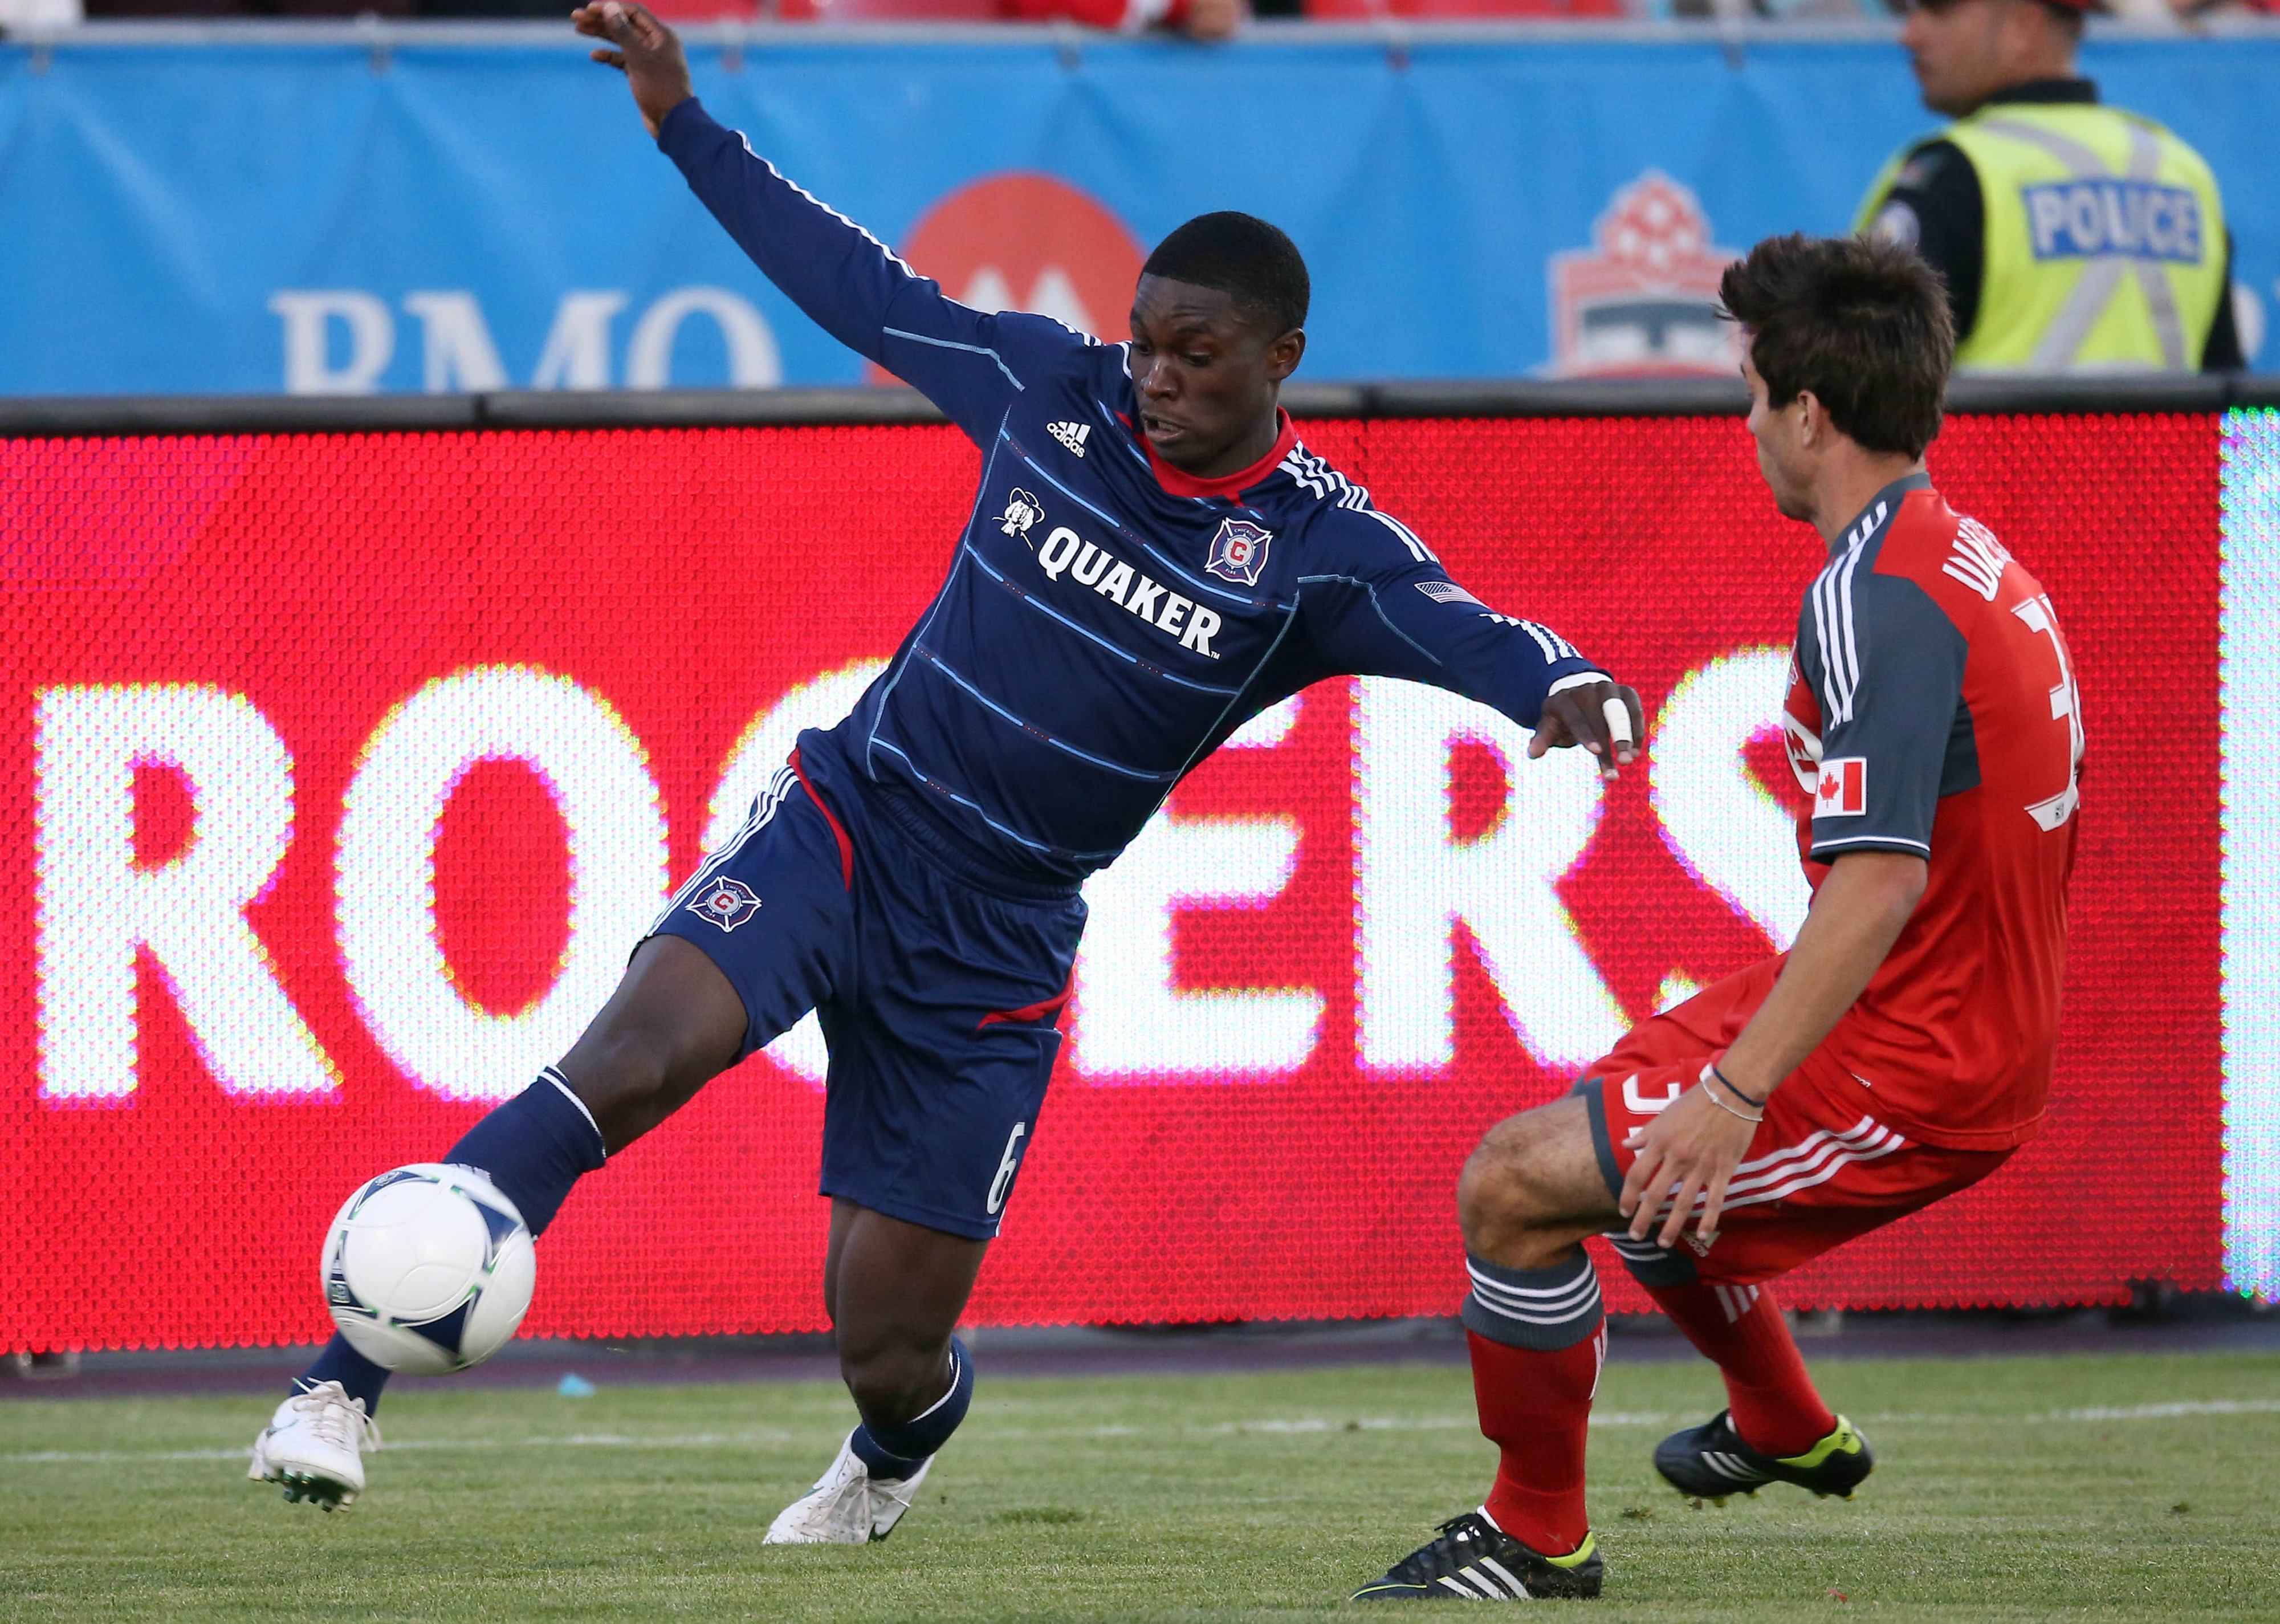 Sep 12, 2012; Toronto, ON, Canada; Chicago Fire defender Jalil Anibaba (6) tries to settle the ball against Toronto FC forward Andrew Wiedeman (32) at BMO Field. The Fire beat the FC 2-1. Mandatory Credit: Tom Szczerbowski-US PRESSWIRE